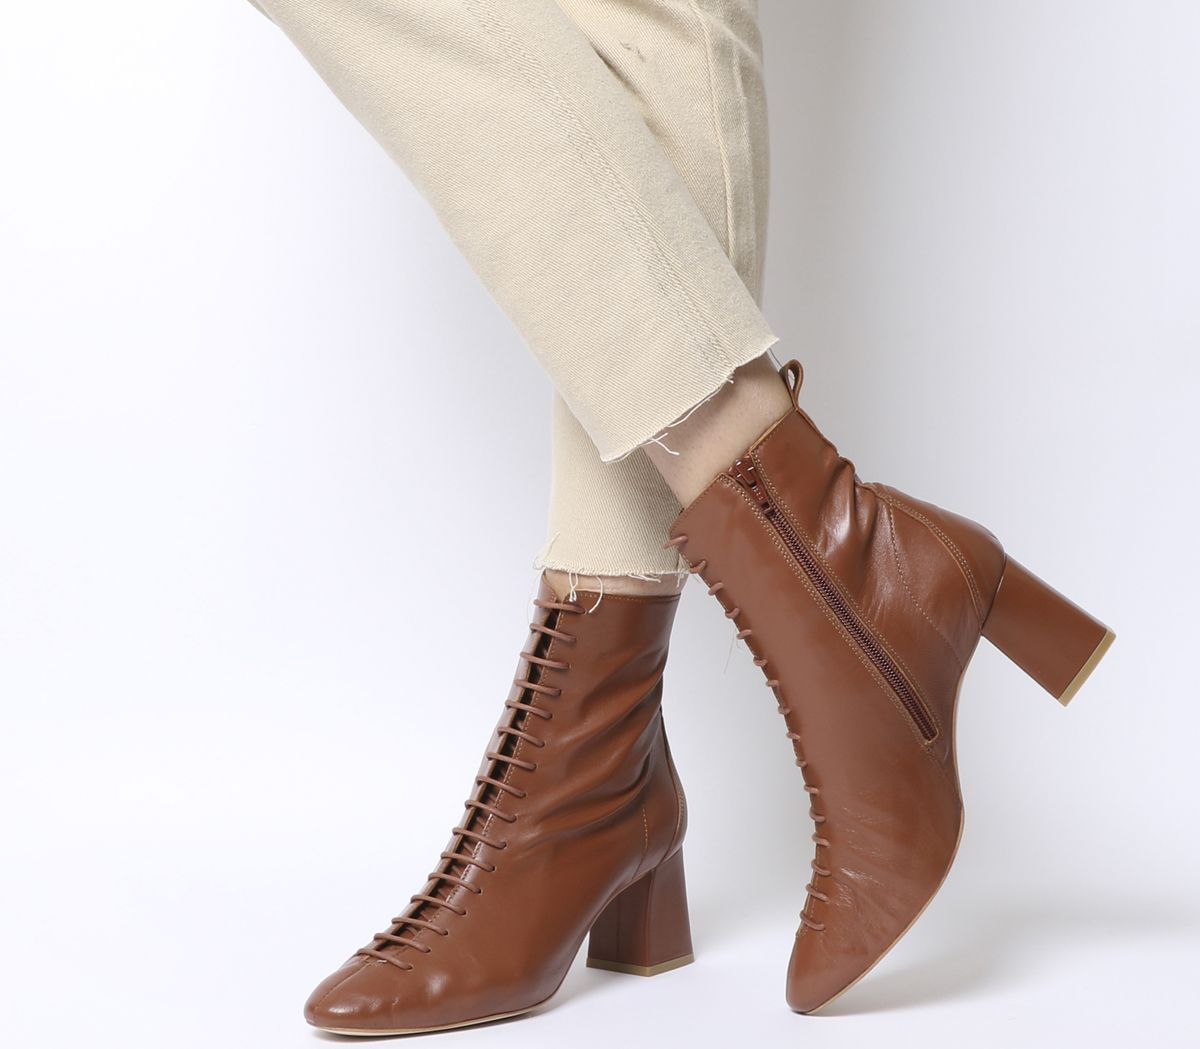 6c612b1bf99 Aloha- Lace Up Mid Block Boots | Accessories galore! All Styles ...